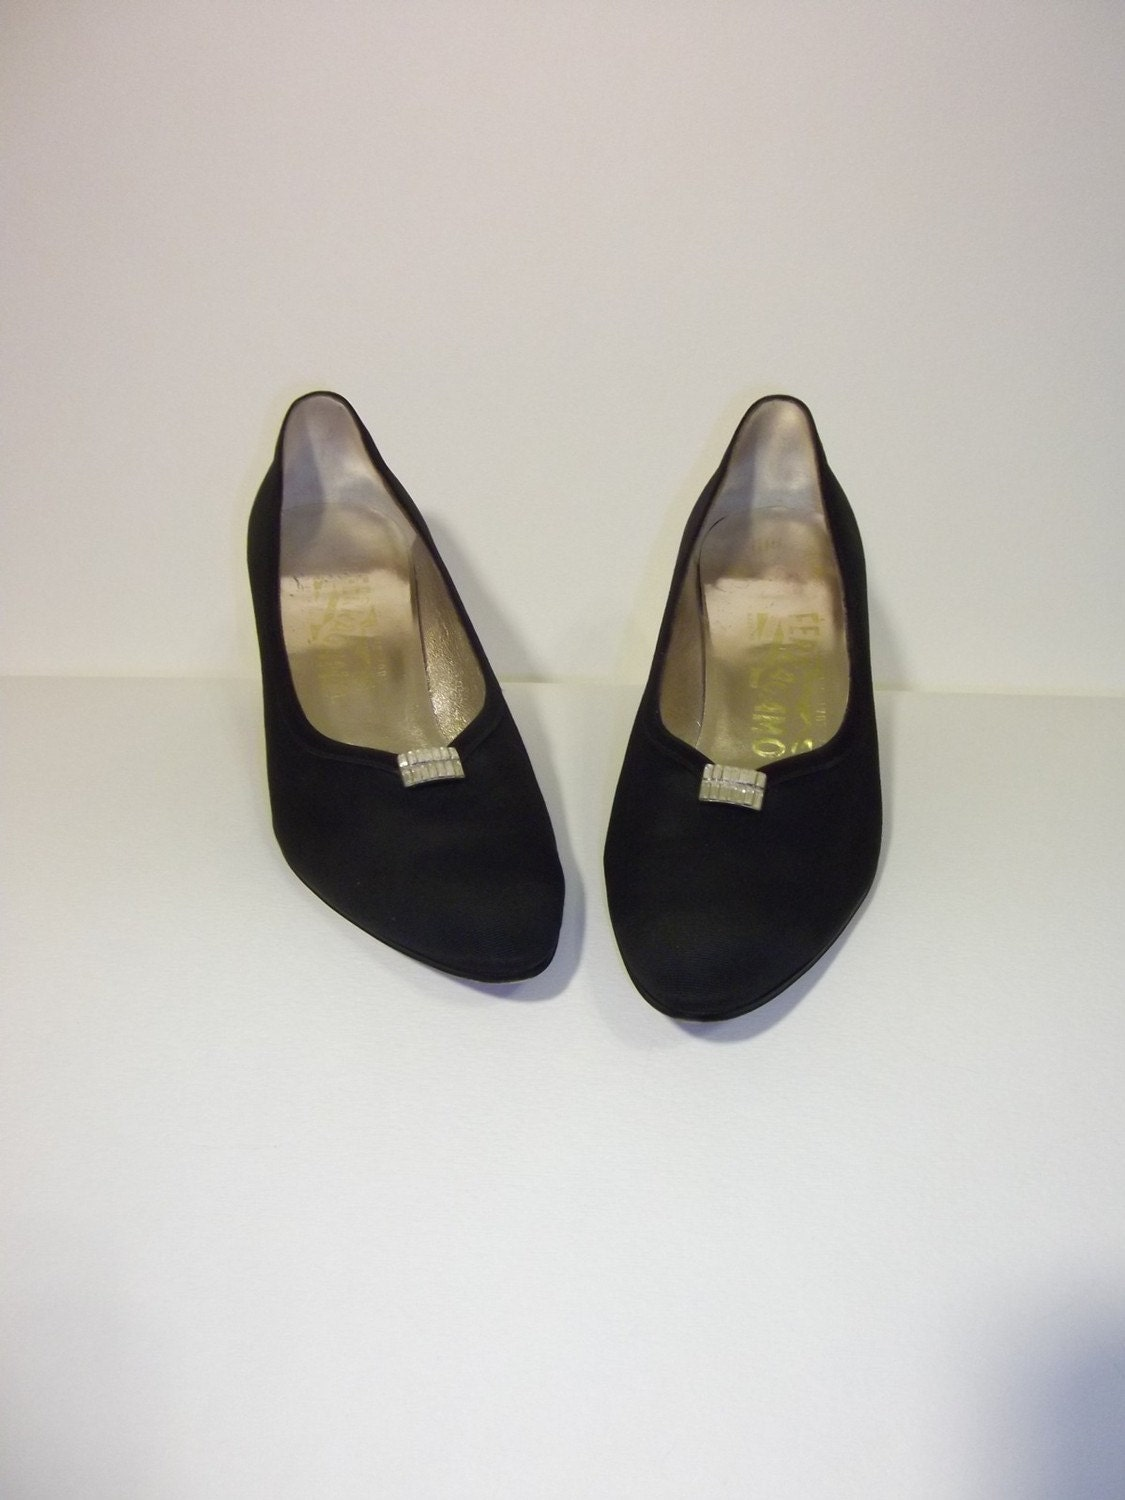 Black Rhinestone Ferragamo Pumps- 7.5 or 8